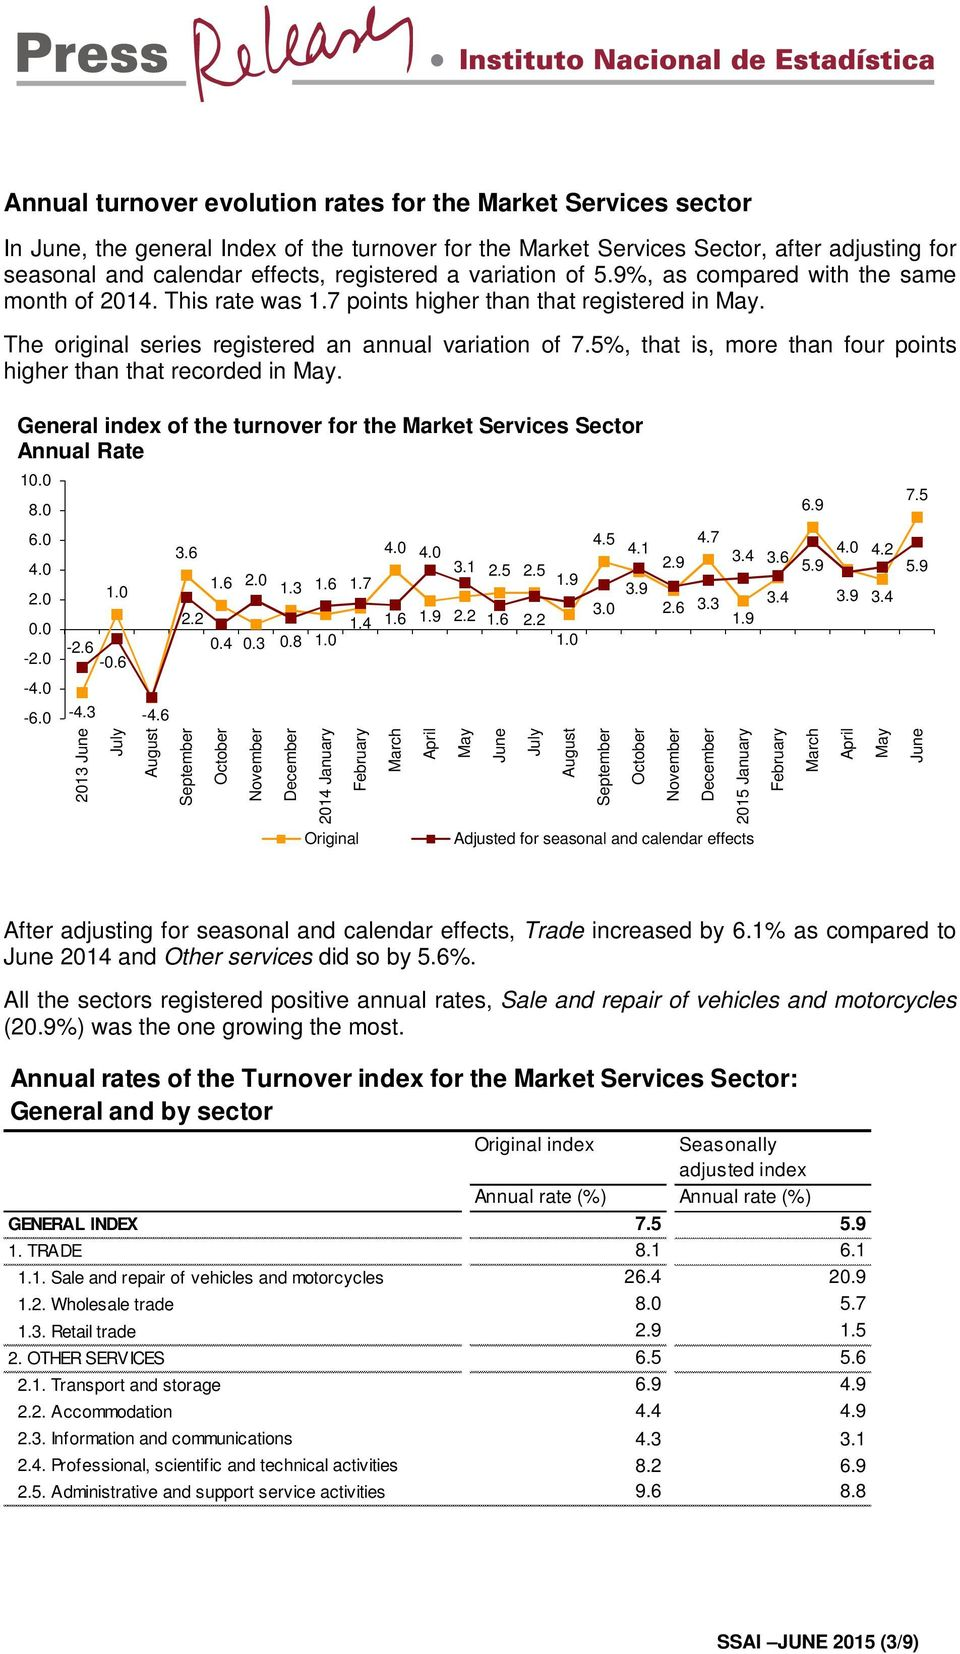 5%, that is, more than four points higher than that recorded in May. General index of the turnover for the Market Services Sector Annual Rate 1 8.0 6.9 7.5 6.0 2.0-2.0 3.6 1.6 1.0 2.2-2.6 0.4-0.6 2.